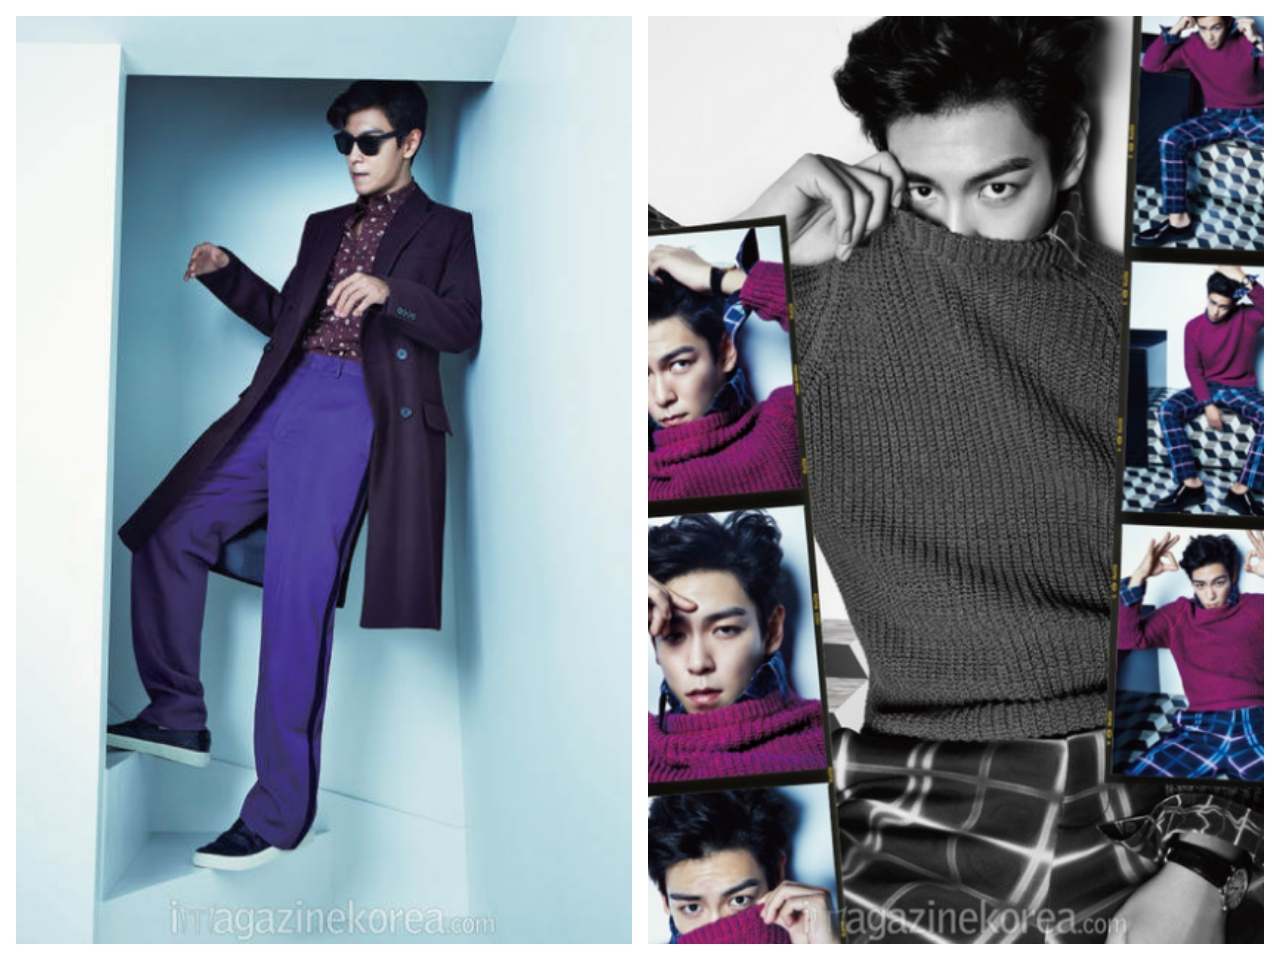 Top - Harper's Bazaar Sept (2)